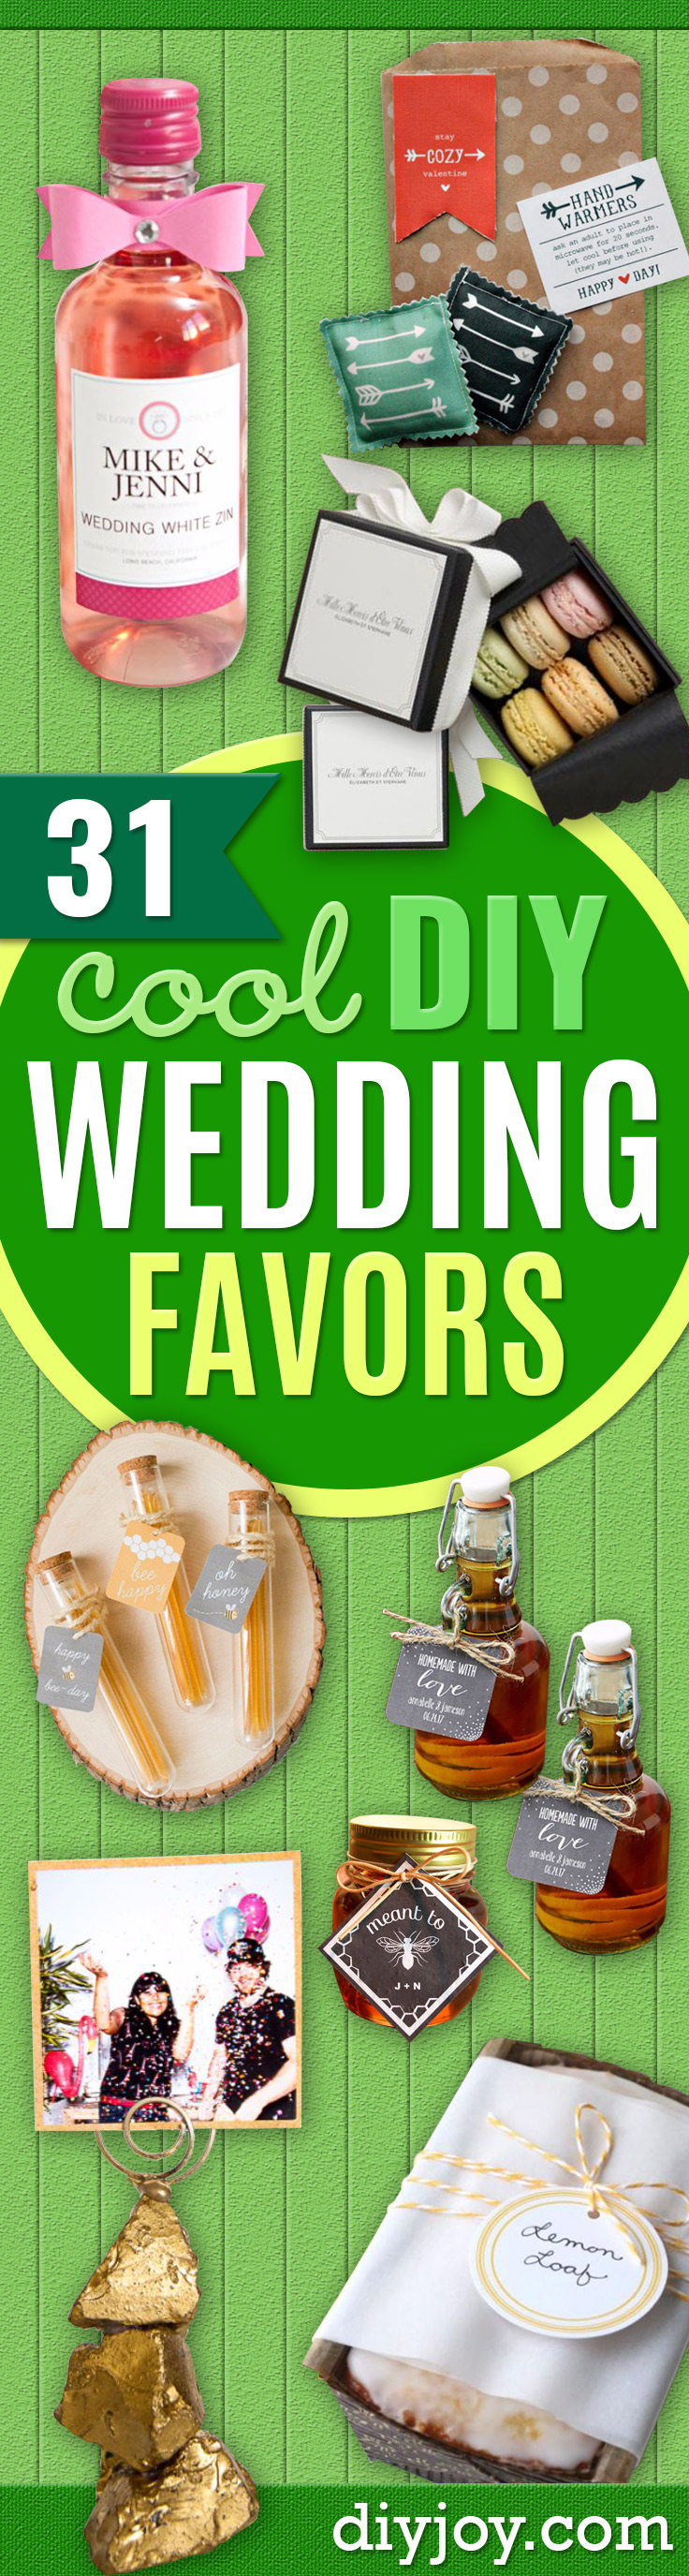 31 brilliantly creative wedding favors you can make for your big day diy wedding favors do it yourself ideas for brides and best wedding favor ideas for solutioingenieria Image collections